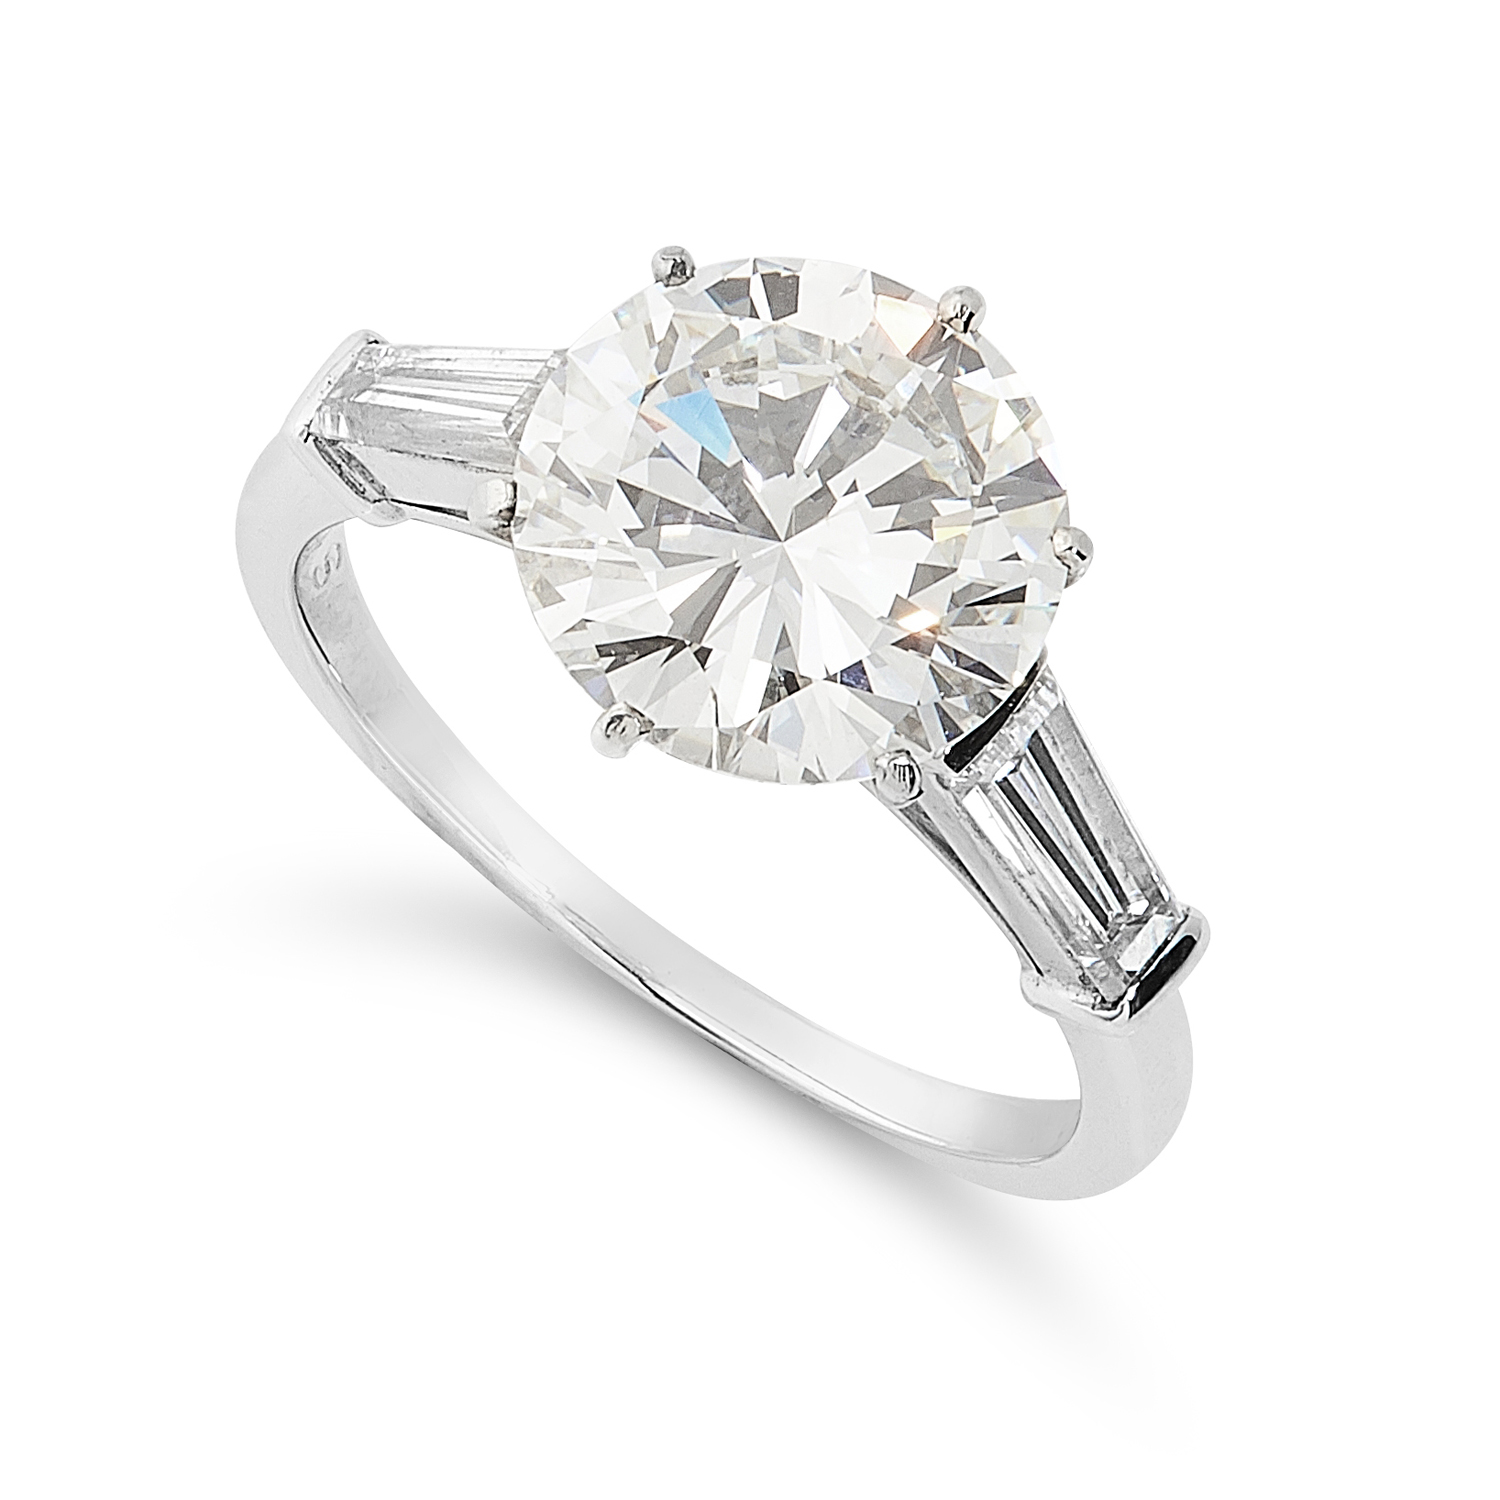 A 3.03 CARAT DIAMOND RING, VAN CLEEF AND ARPELS in platinum, set with a round cut diamond of 3.03 - Image 2 of 3